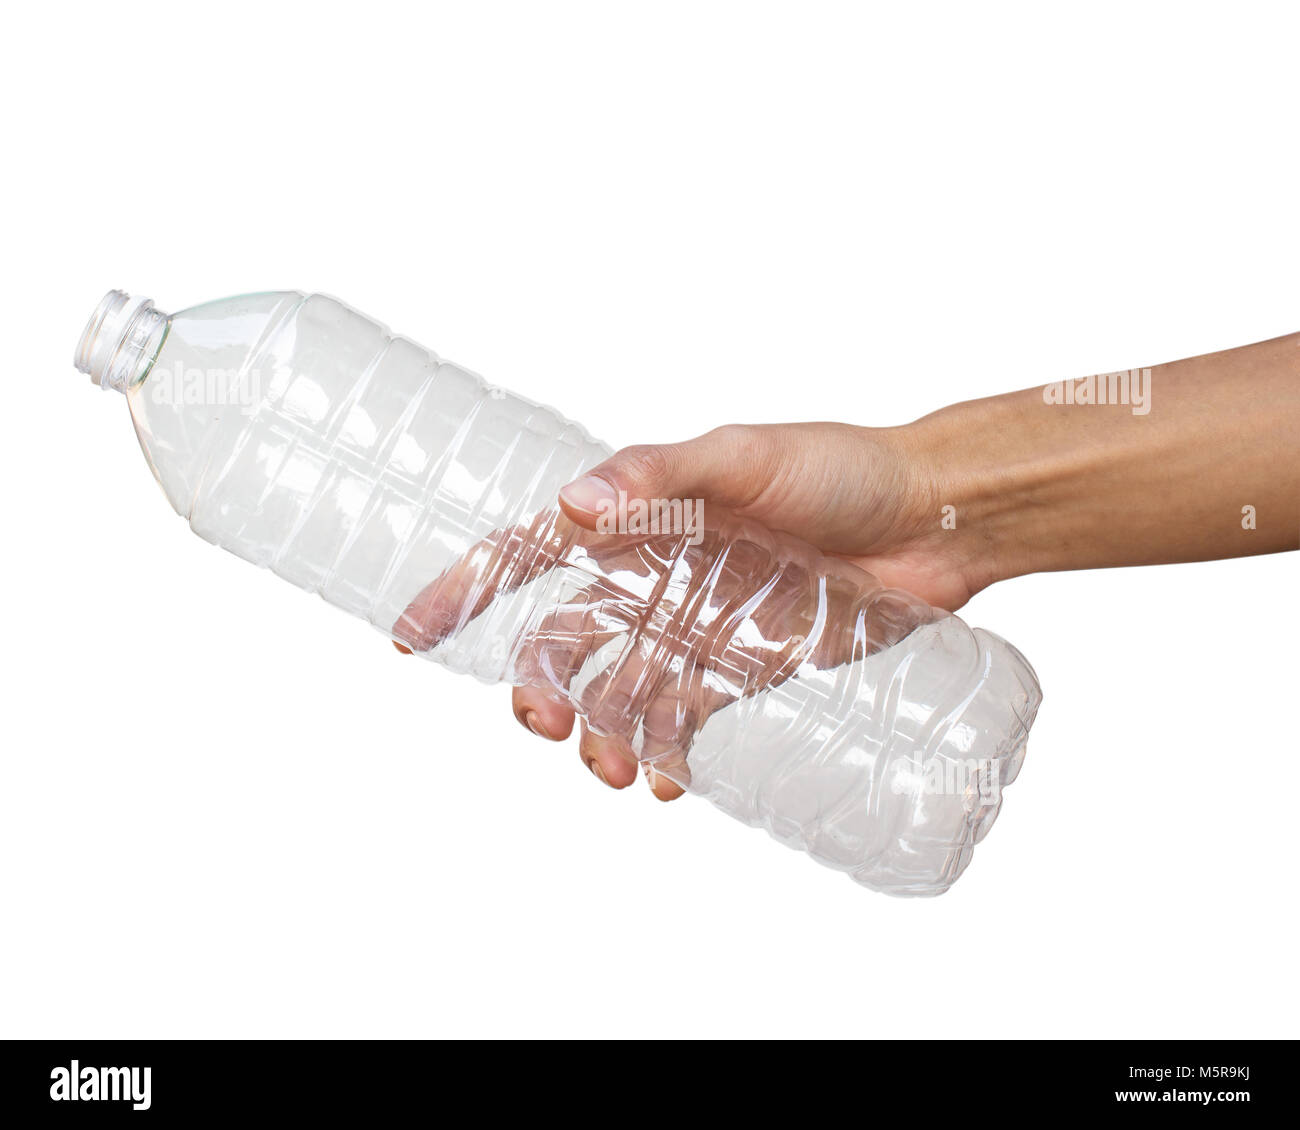 A man hand holding clear water bottle isolated on white background with clipping path. Water bottle in human hand. - Stock Image